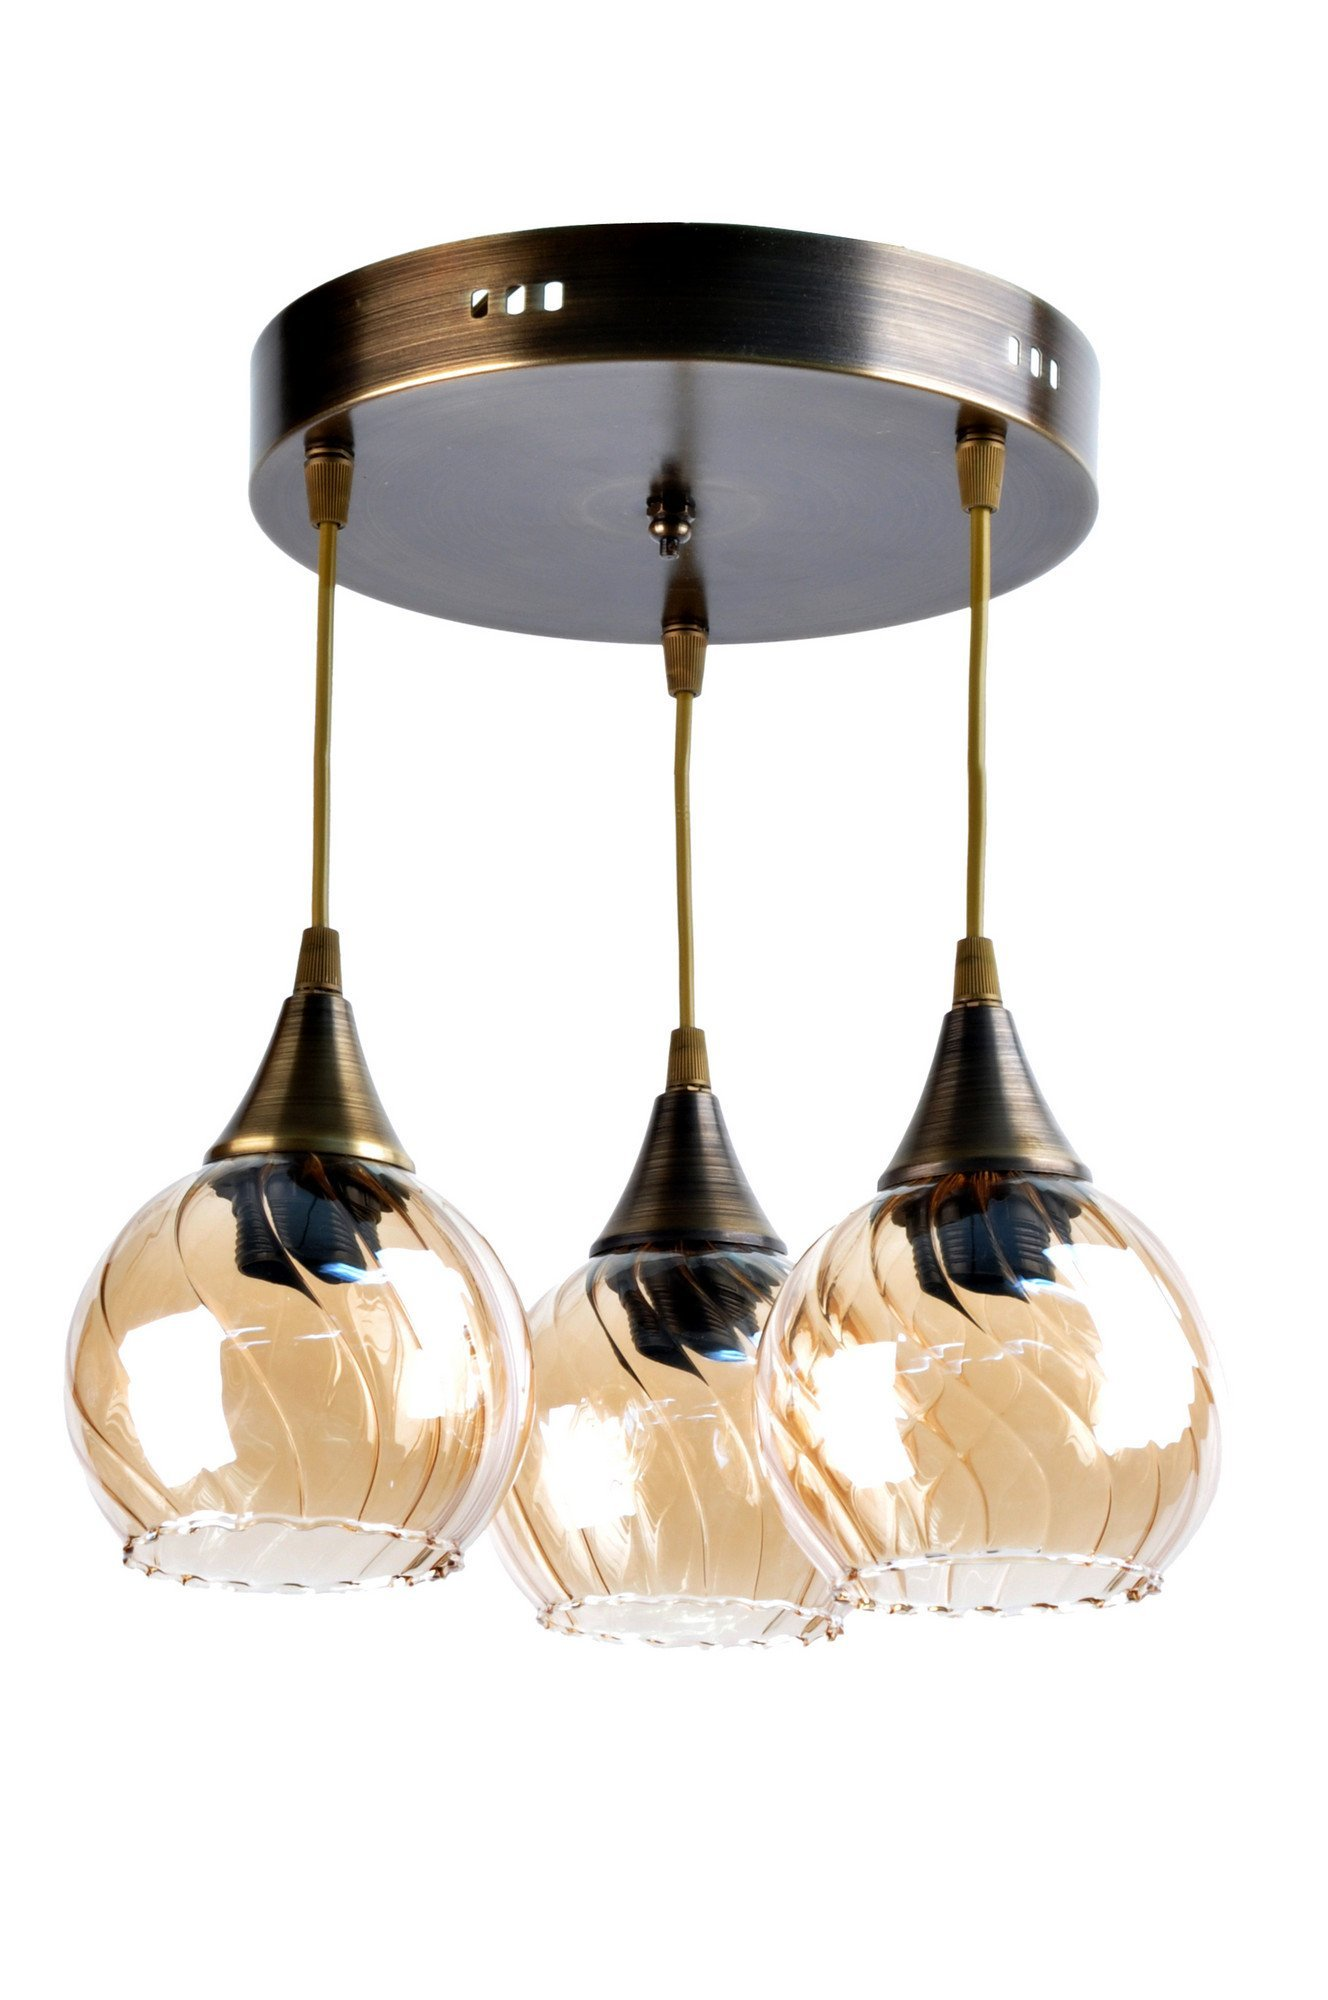 LaModaHome Retro Chandelier, Place for 3 Light Bulbs, Modern, Decorative - Hang Ceiling Lighting Fixture for Home & Office, Living Room, Study Room